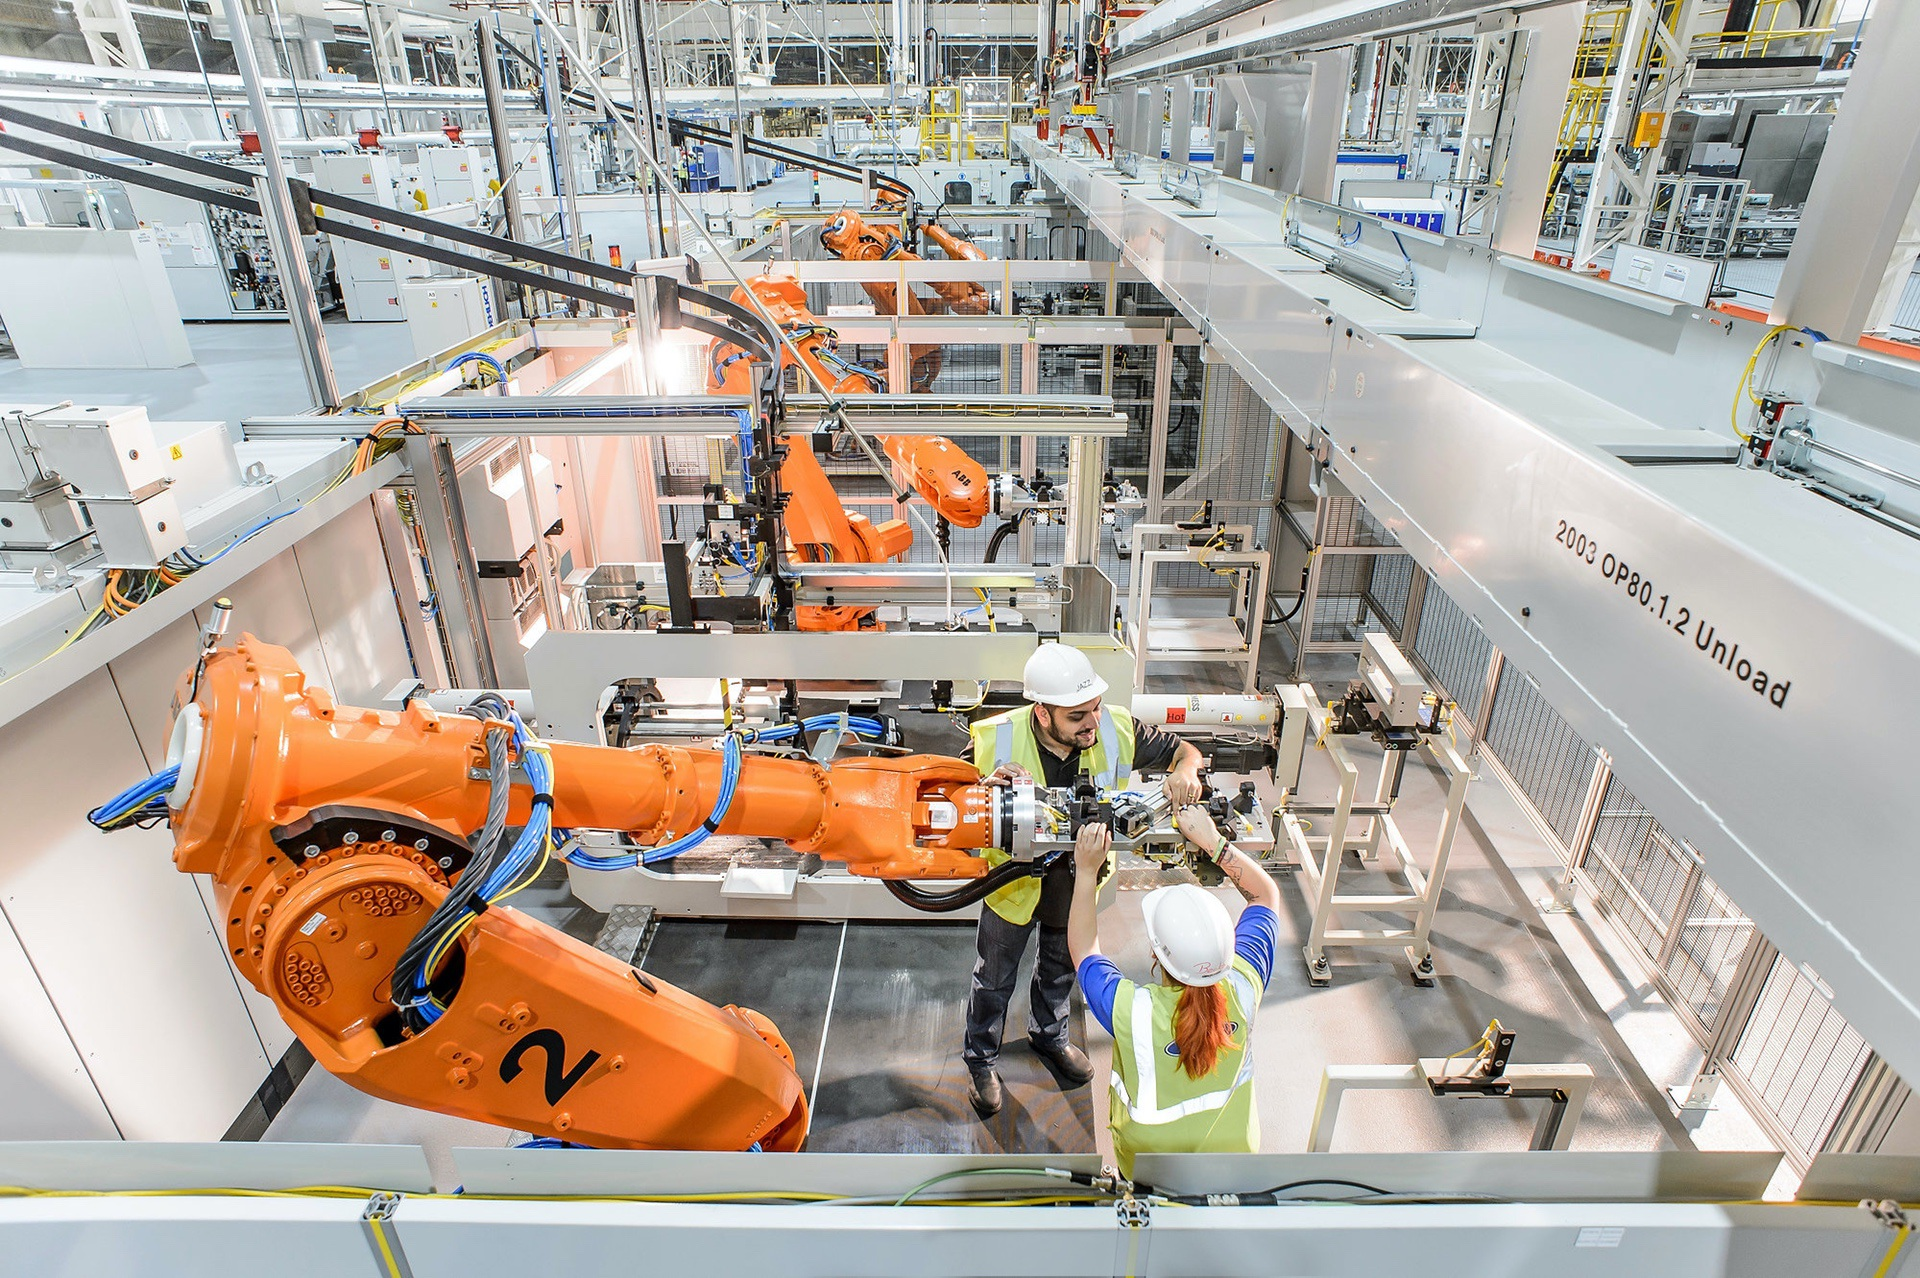 Dagenham Engine Plant is Ford's largest diesel engine production facility globally